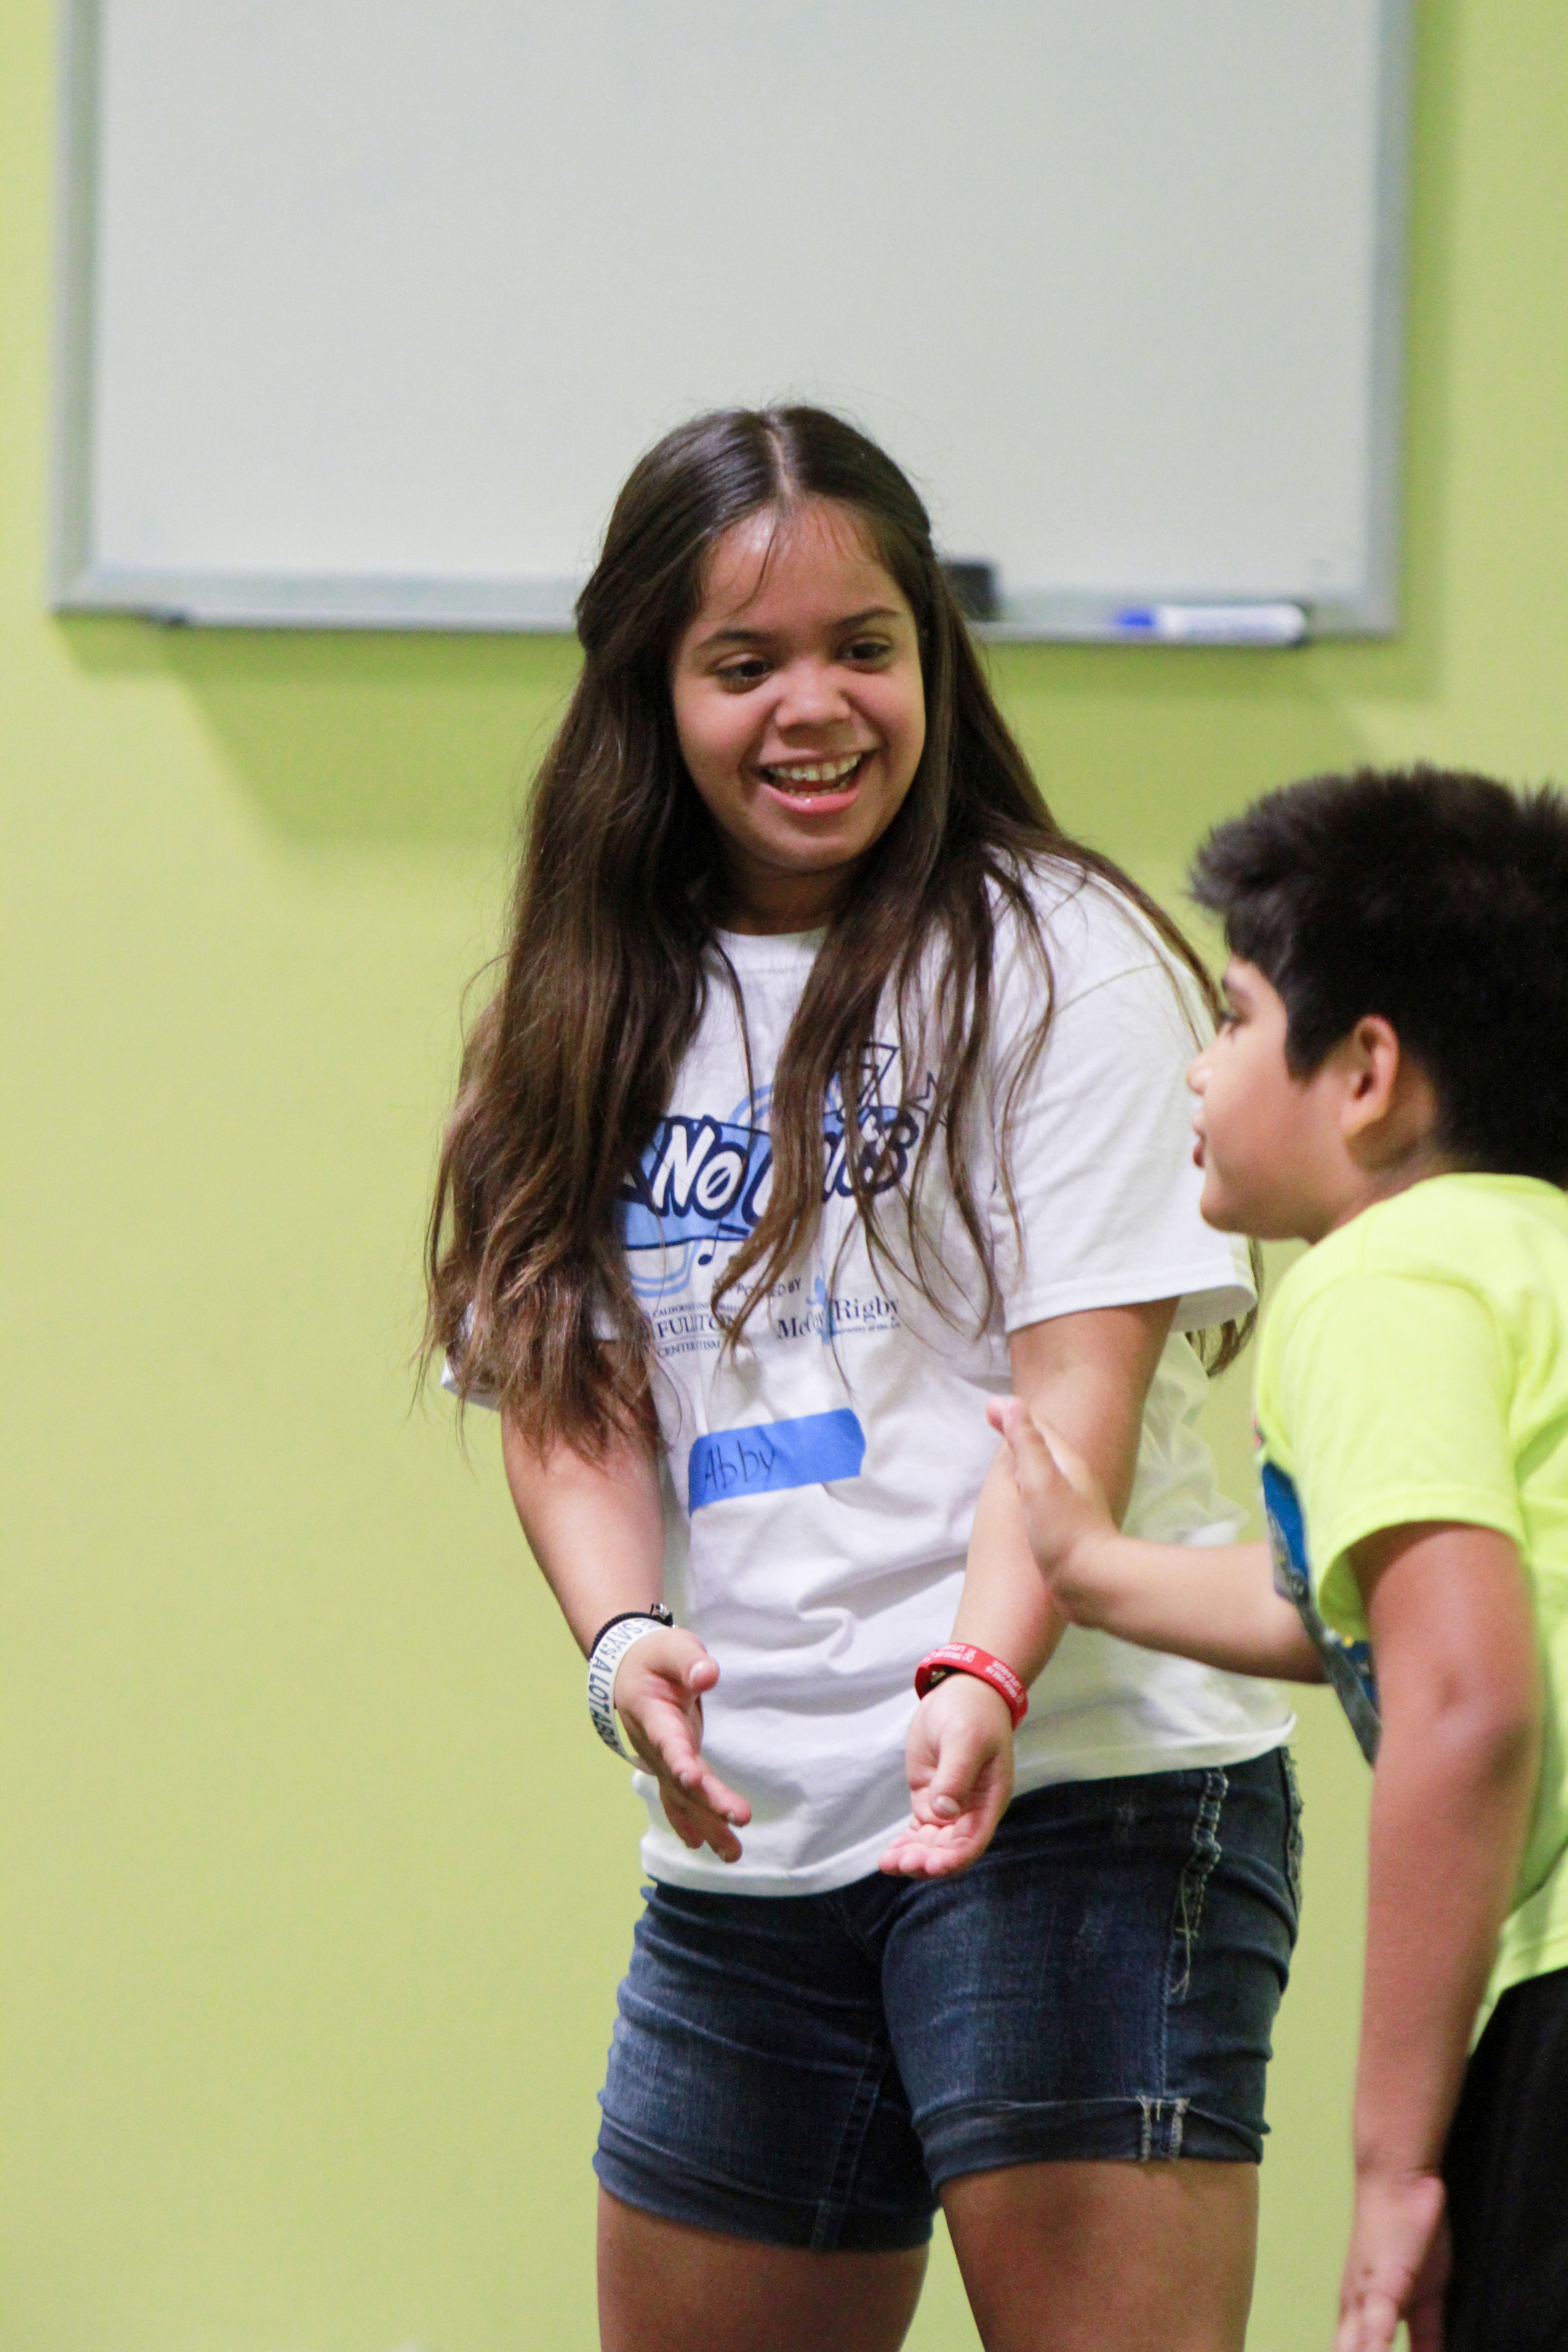 Get Involved - No Limits is always looking for fun, energetic individuals to be mentors in our program. If you are 12 or older we would love to hear from you.